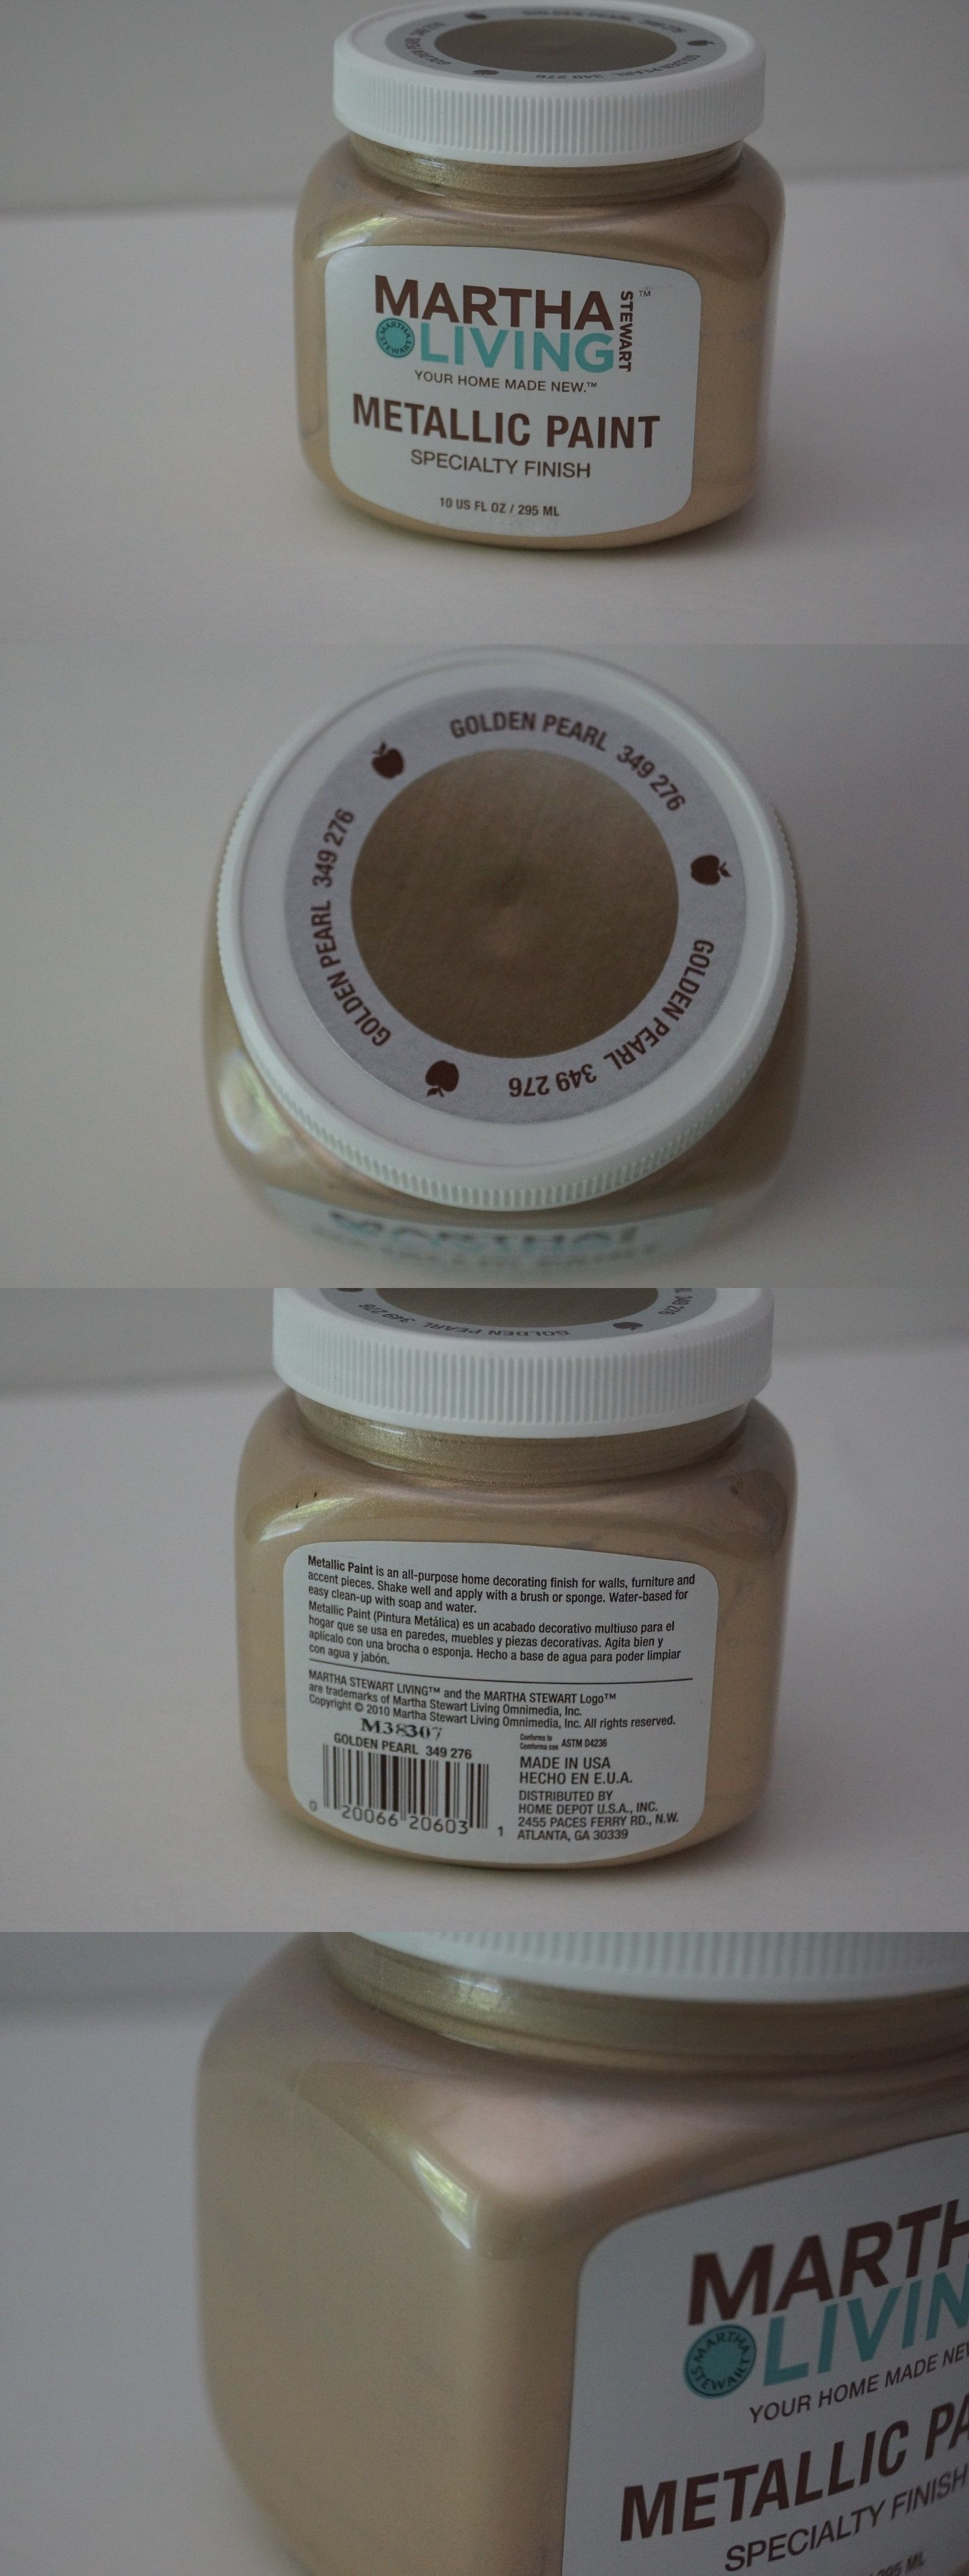 Other Paint And Varnish 180980: New Martha Stewart Living Specialty Metallic  Paint Golden Pearl Discontinued